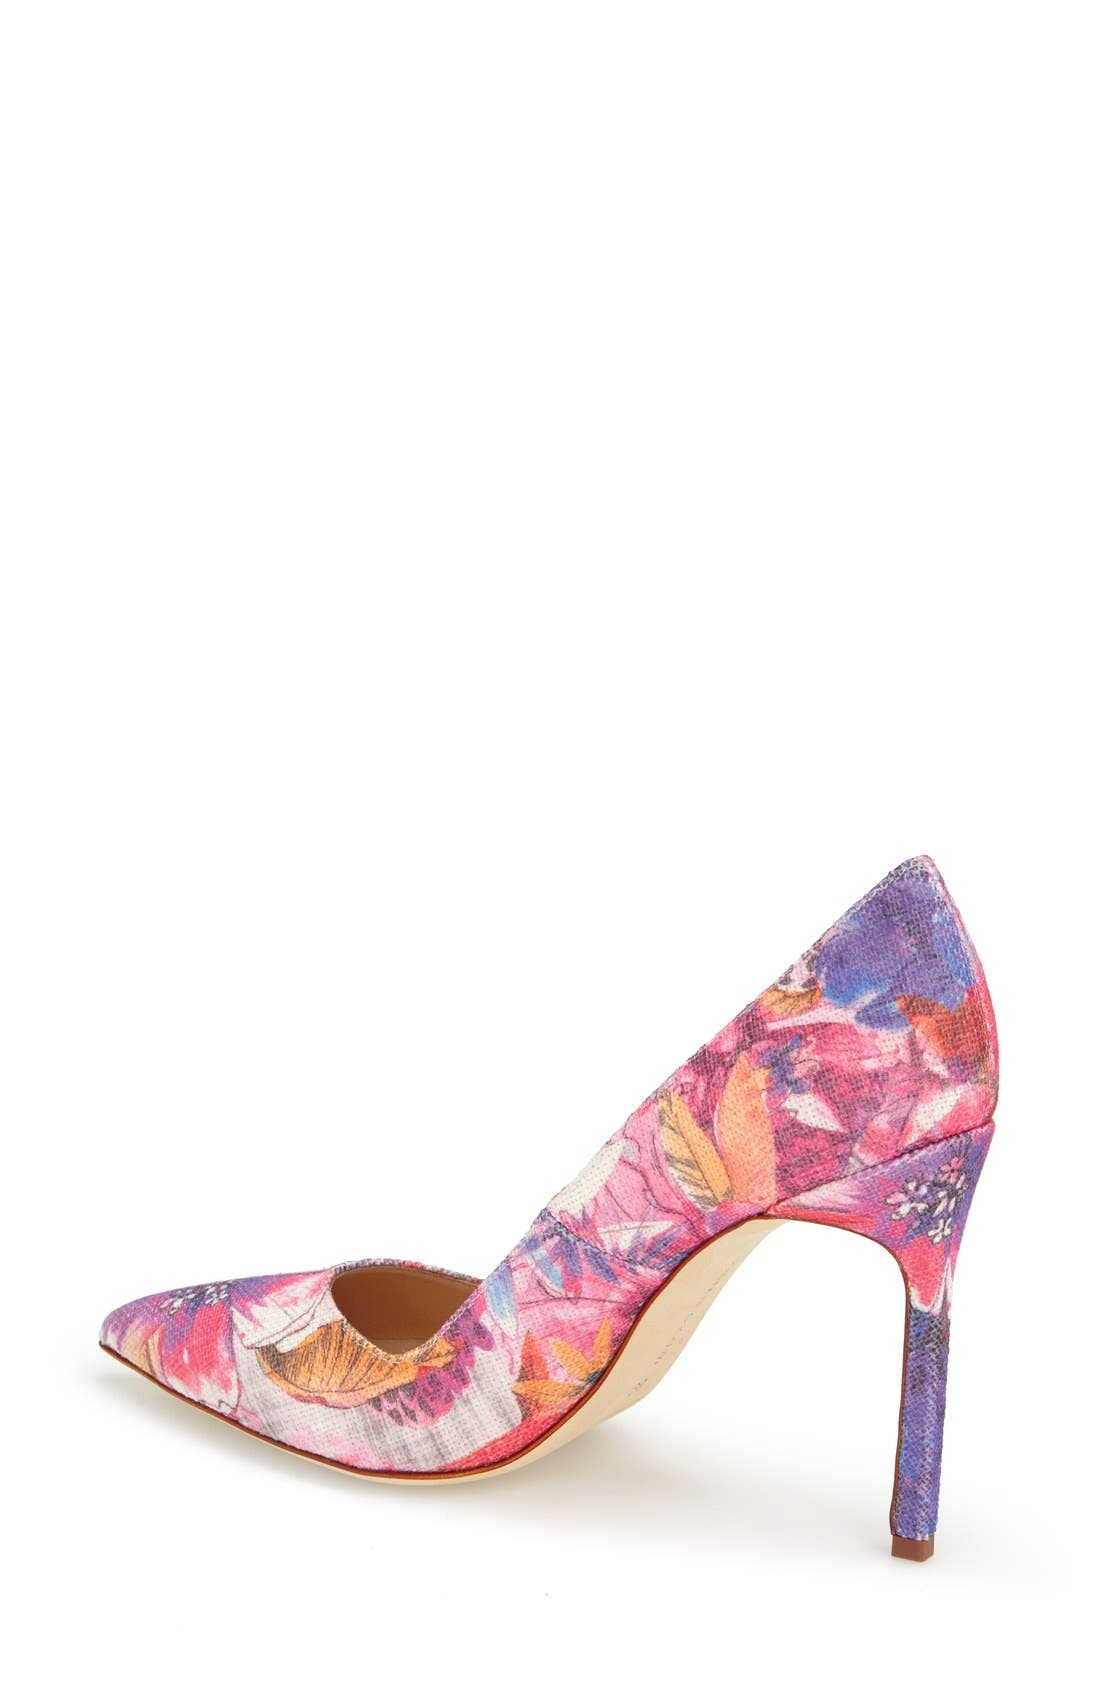 BB Pointy Toe Pump,                             Alternate thumbnail 27, color,